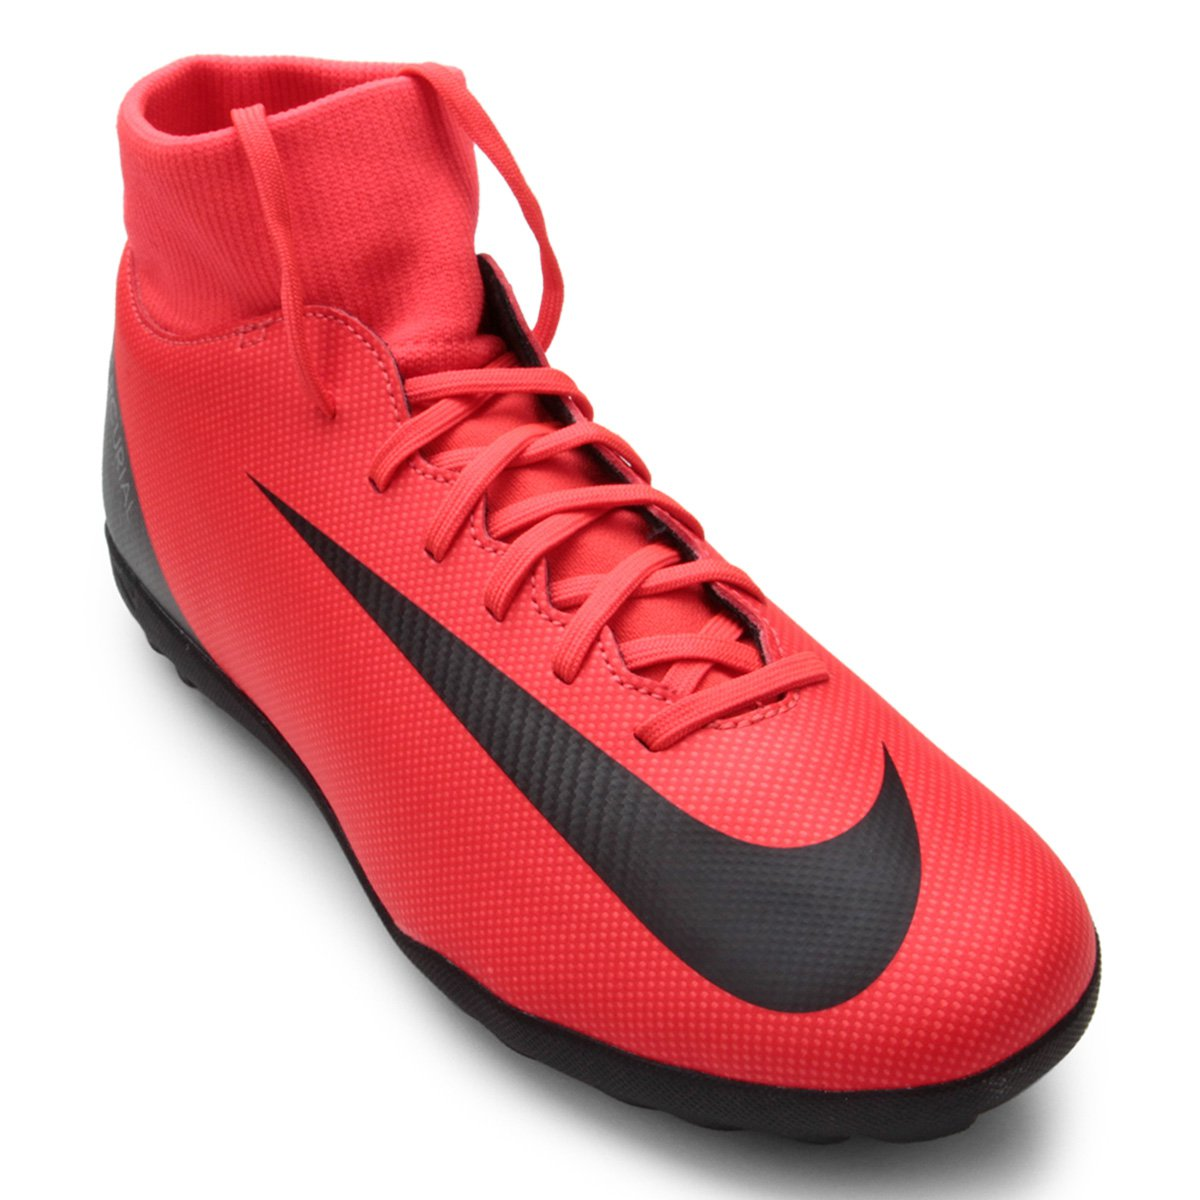 98f1c7435 Chuteira Society Nike Mercurial Superfly 6 Club CR7 TF - Compre Agora